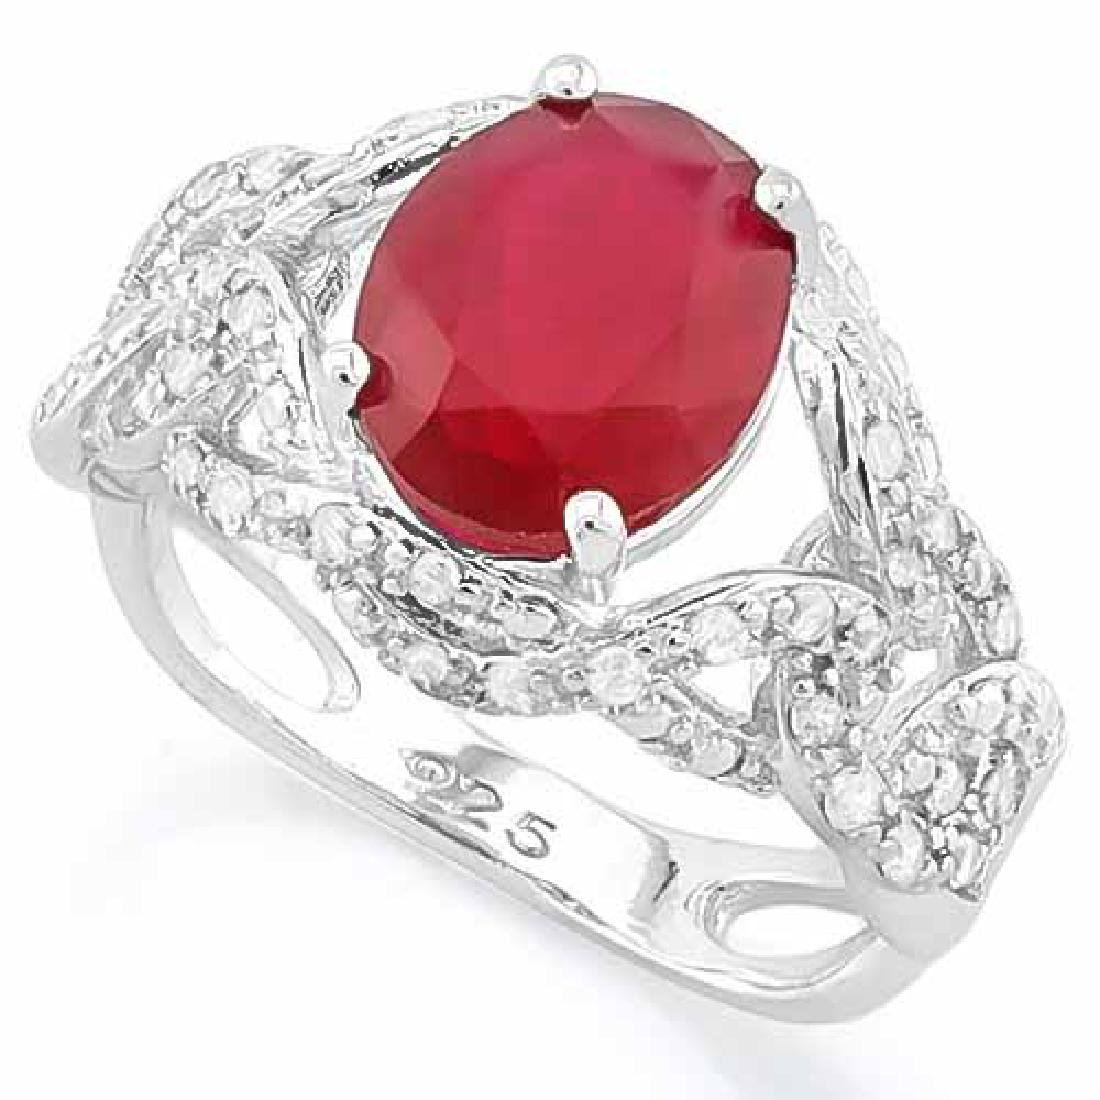 3 1/2 CARAT CREATED RUBY & 4 1/5 CARAT (42 PCS) FLAWLES